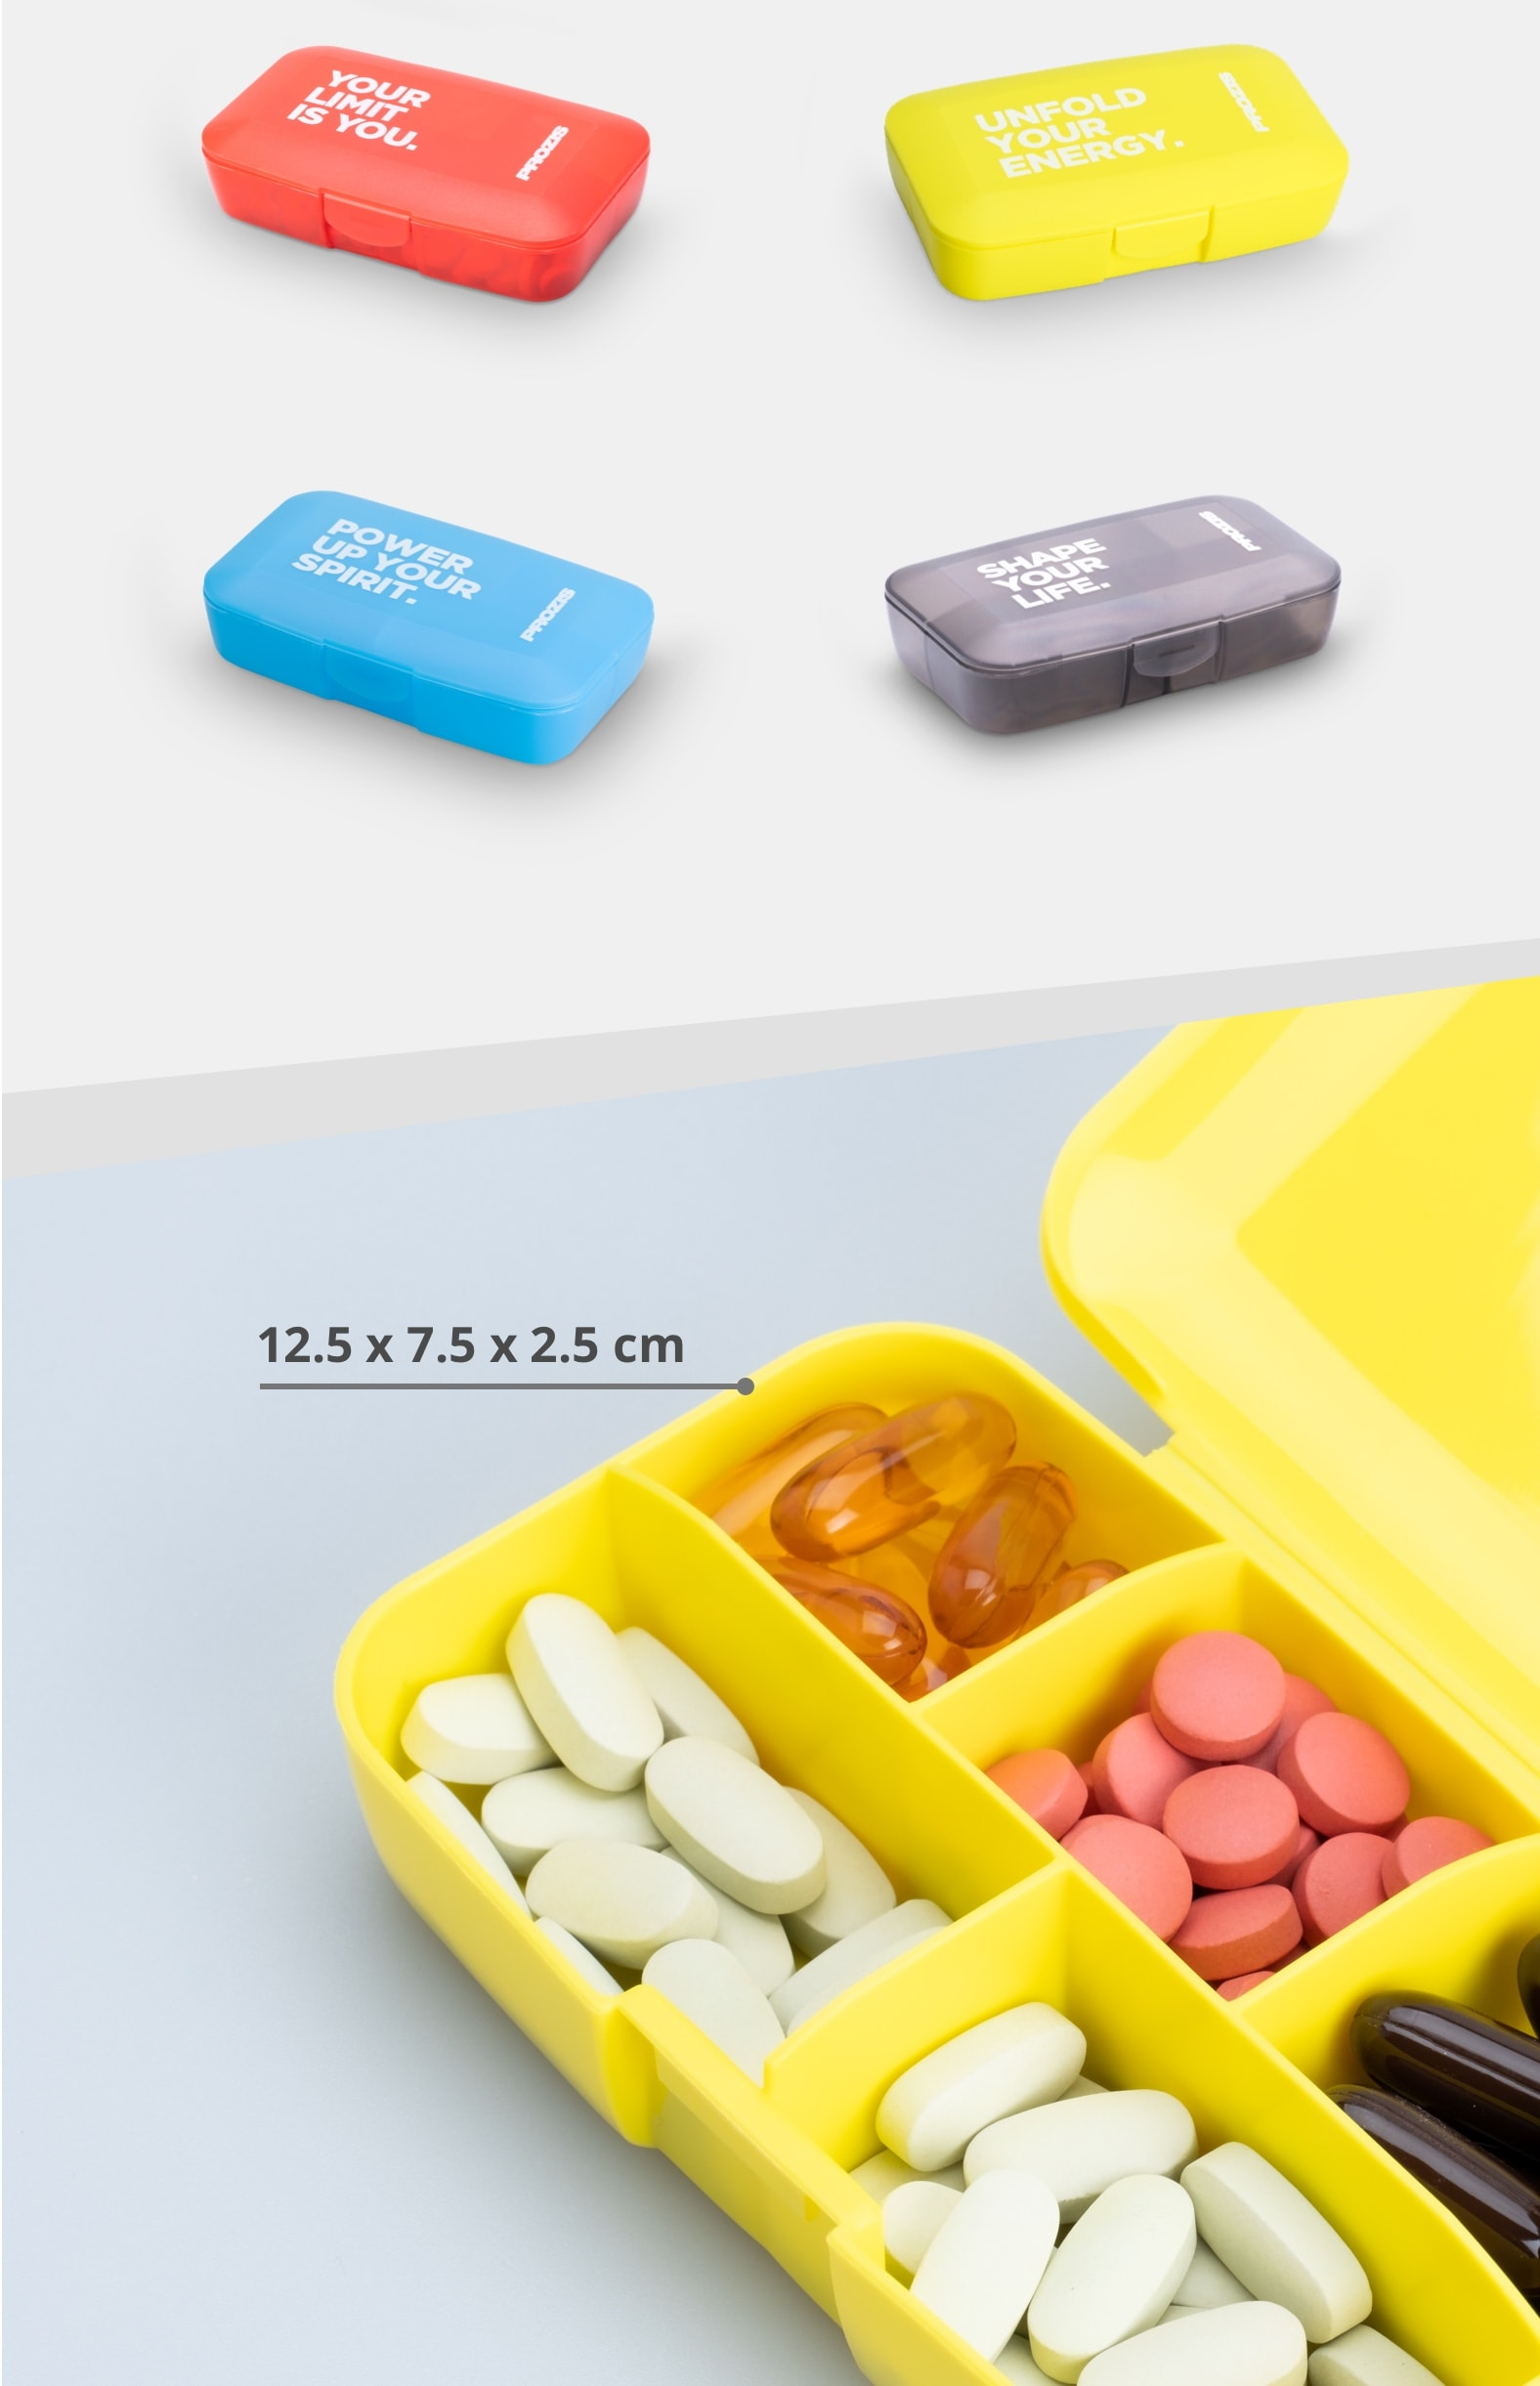 Prozis Pillbox container